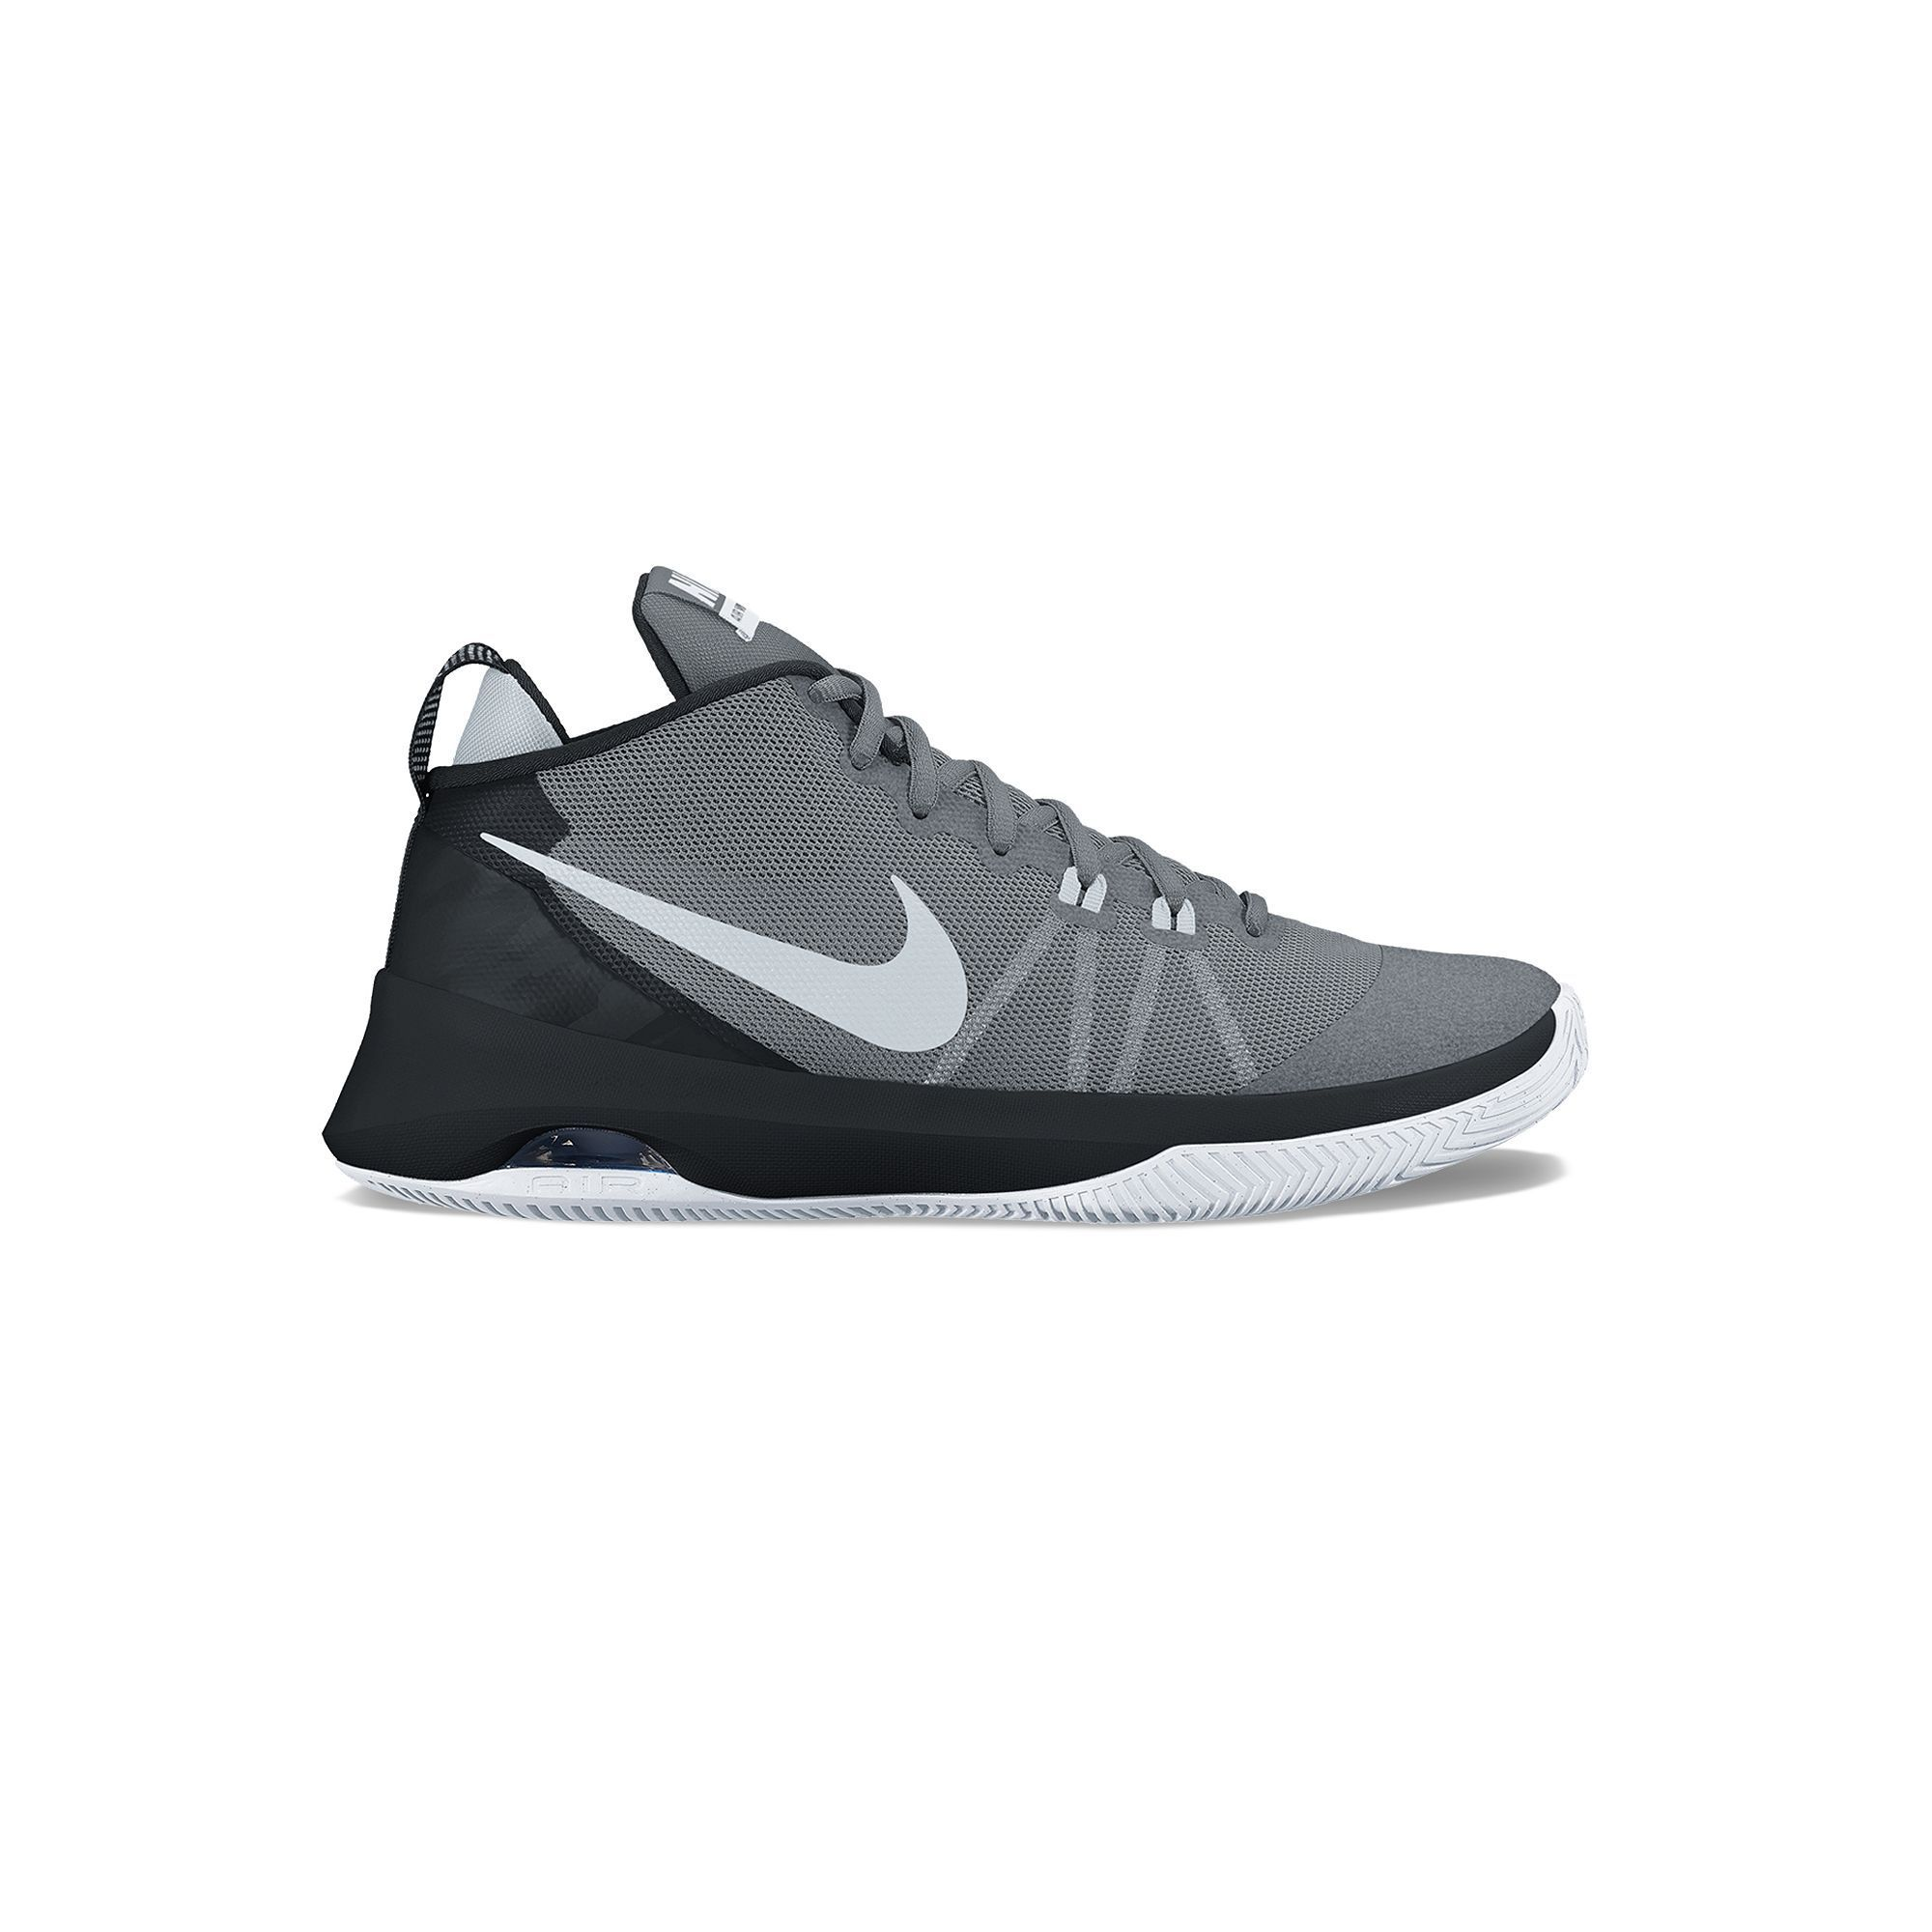 online retailer f1371 62a0b Nike Air Versitile Mens Basketball Shoes, Size 11.5, Grey (Charcoal),  Durable